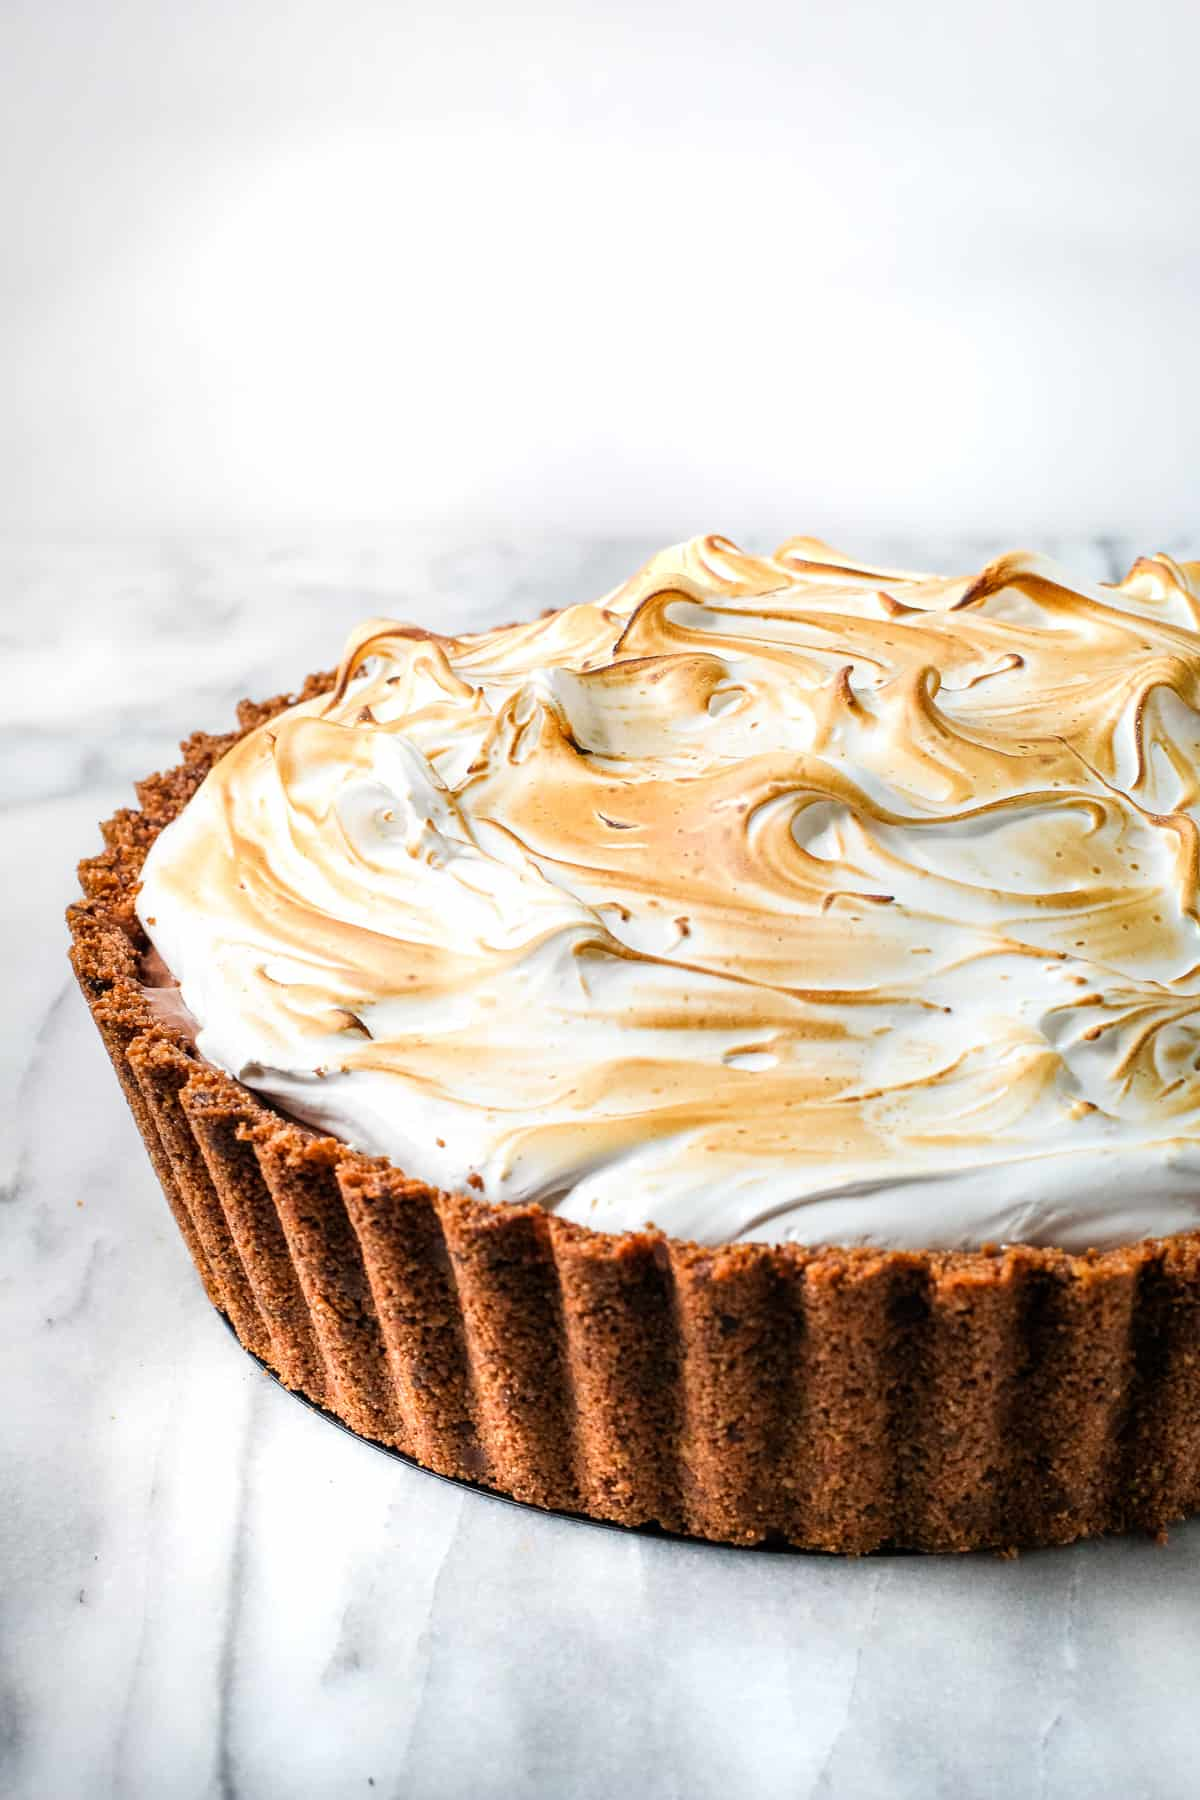 Toasted meringue on top of a pie